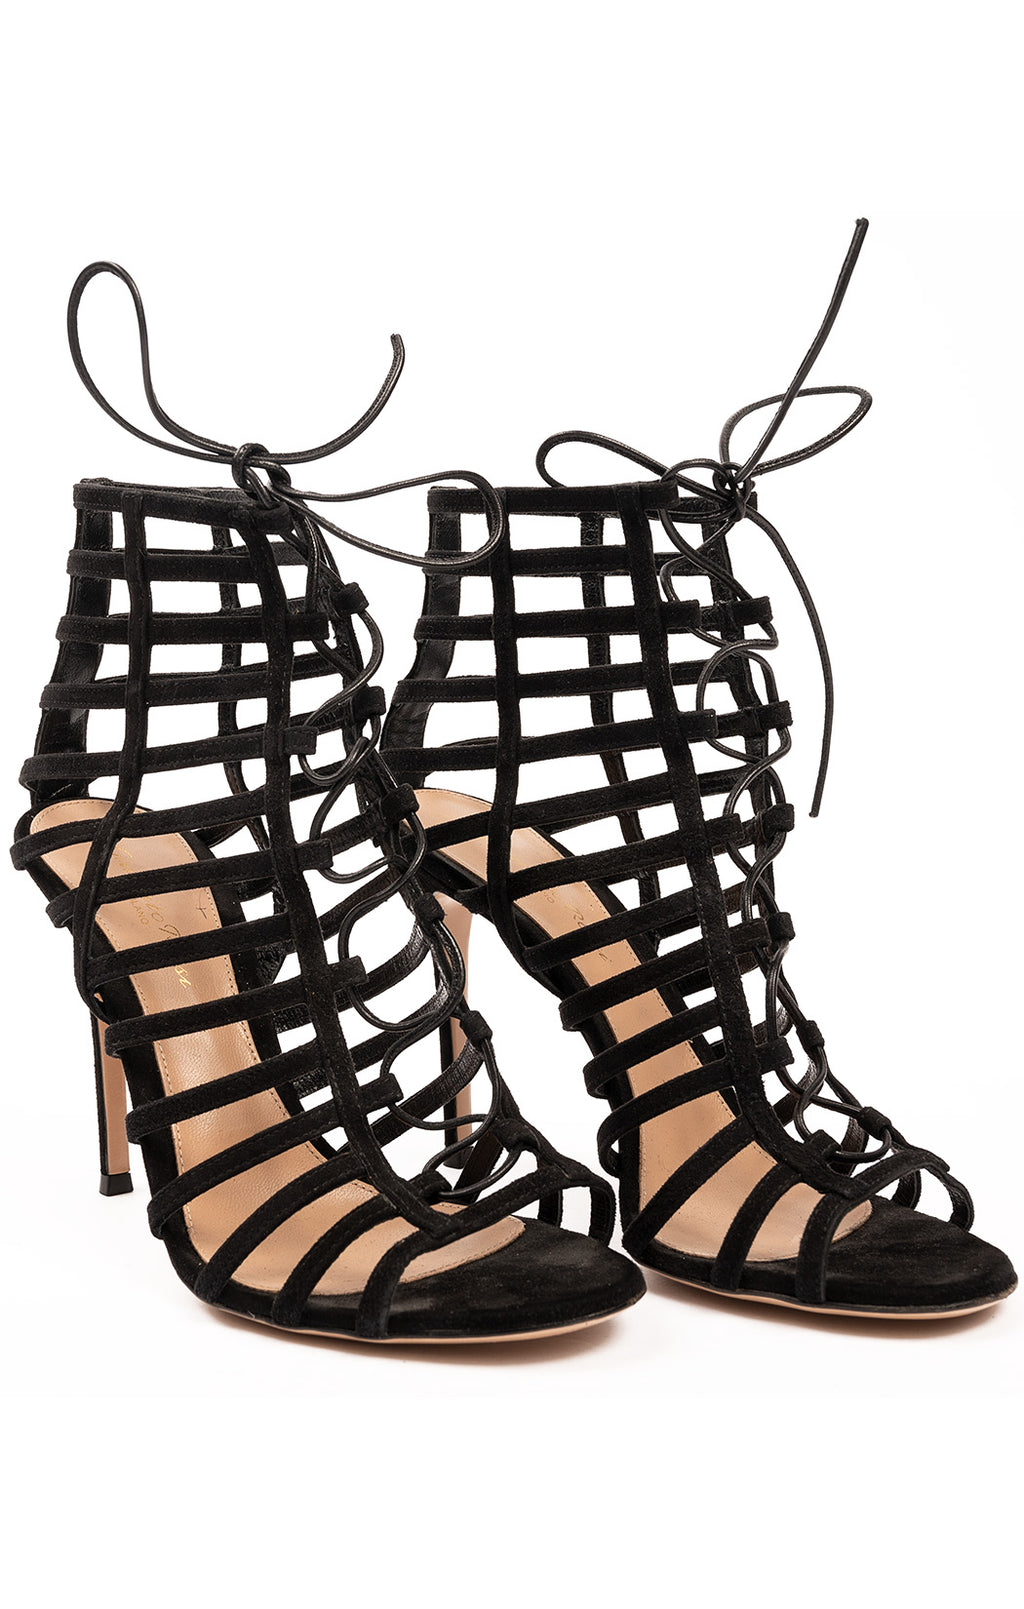 "Black suede cage like style, lace front with 4.5"" heel"